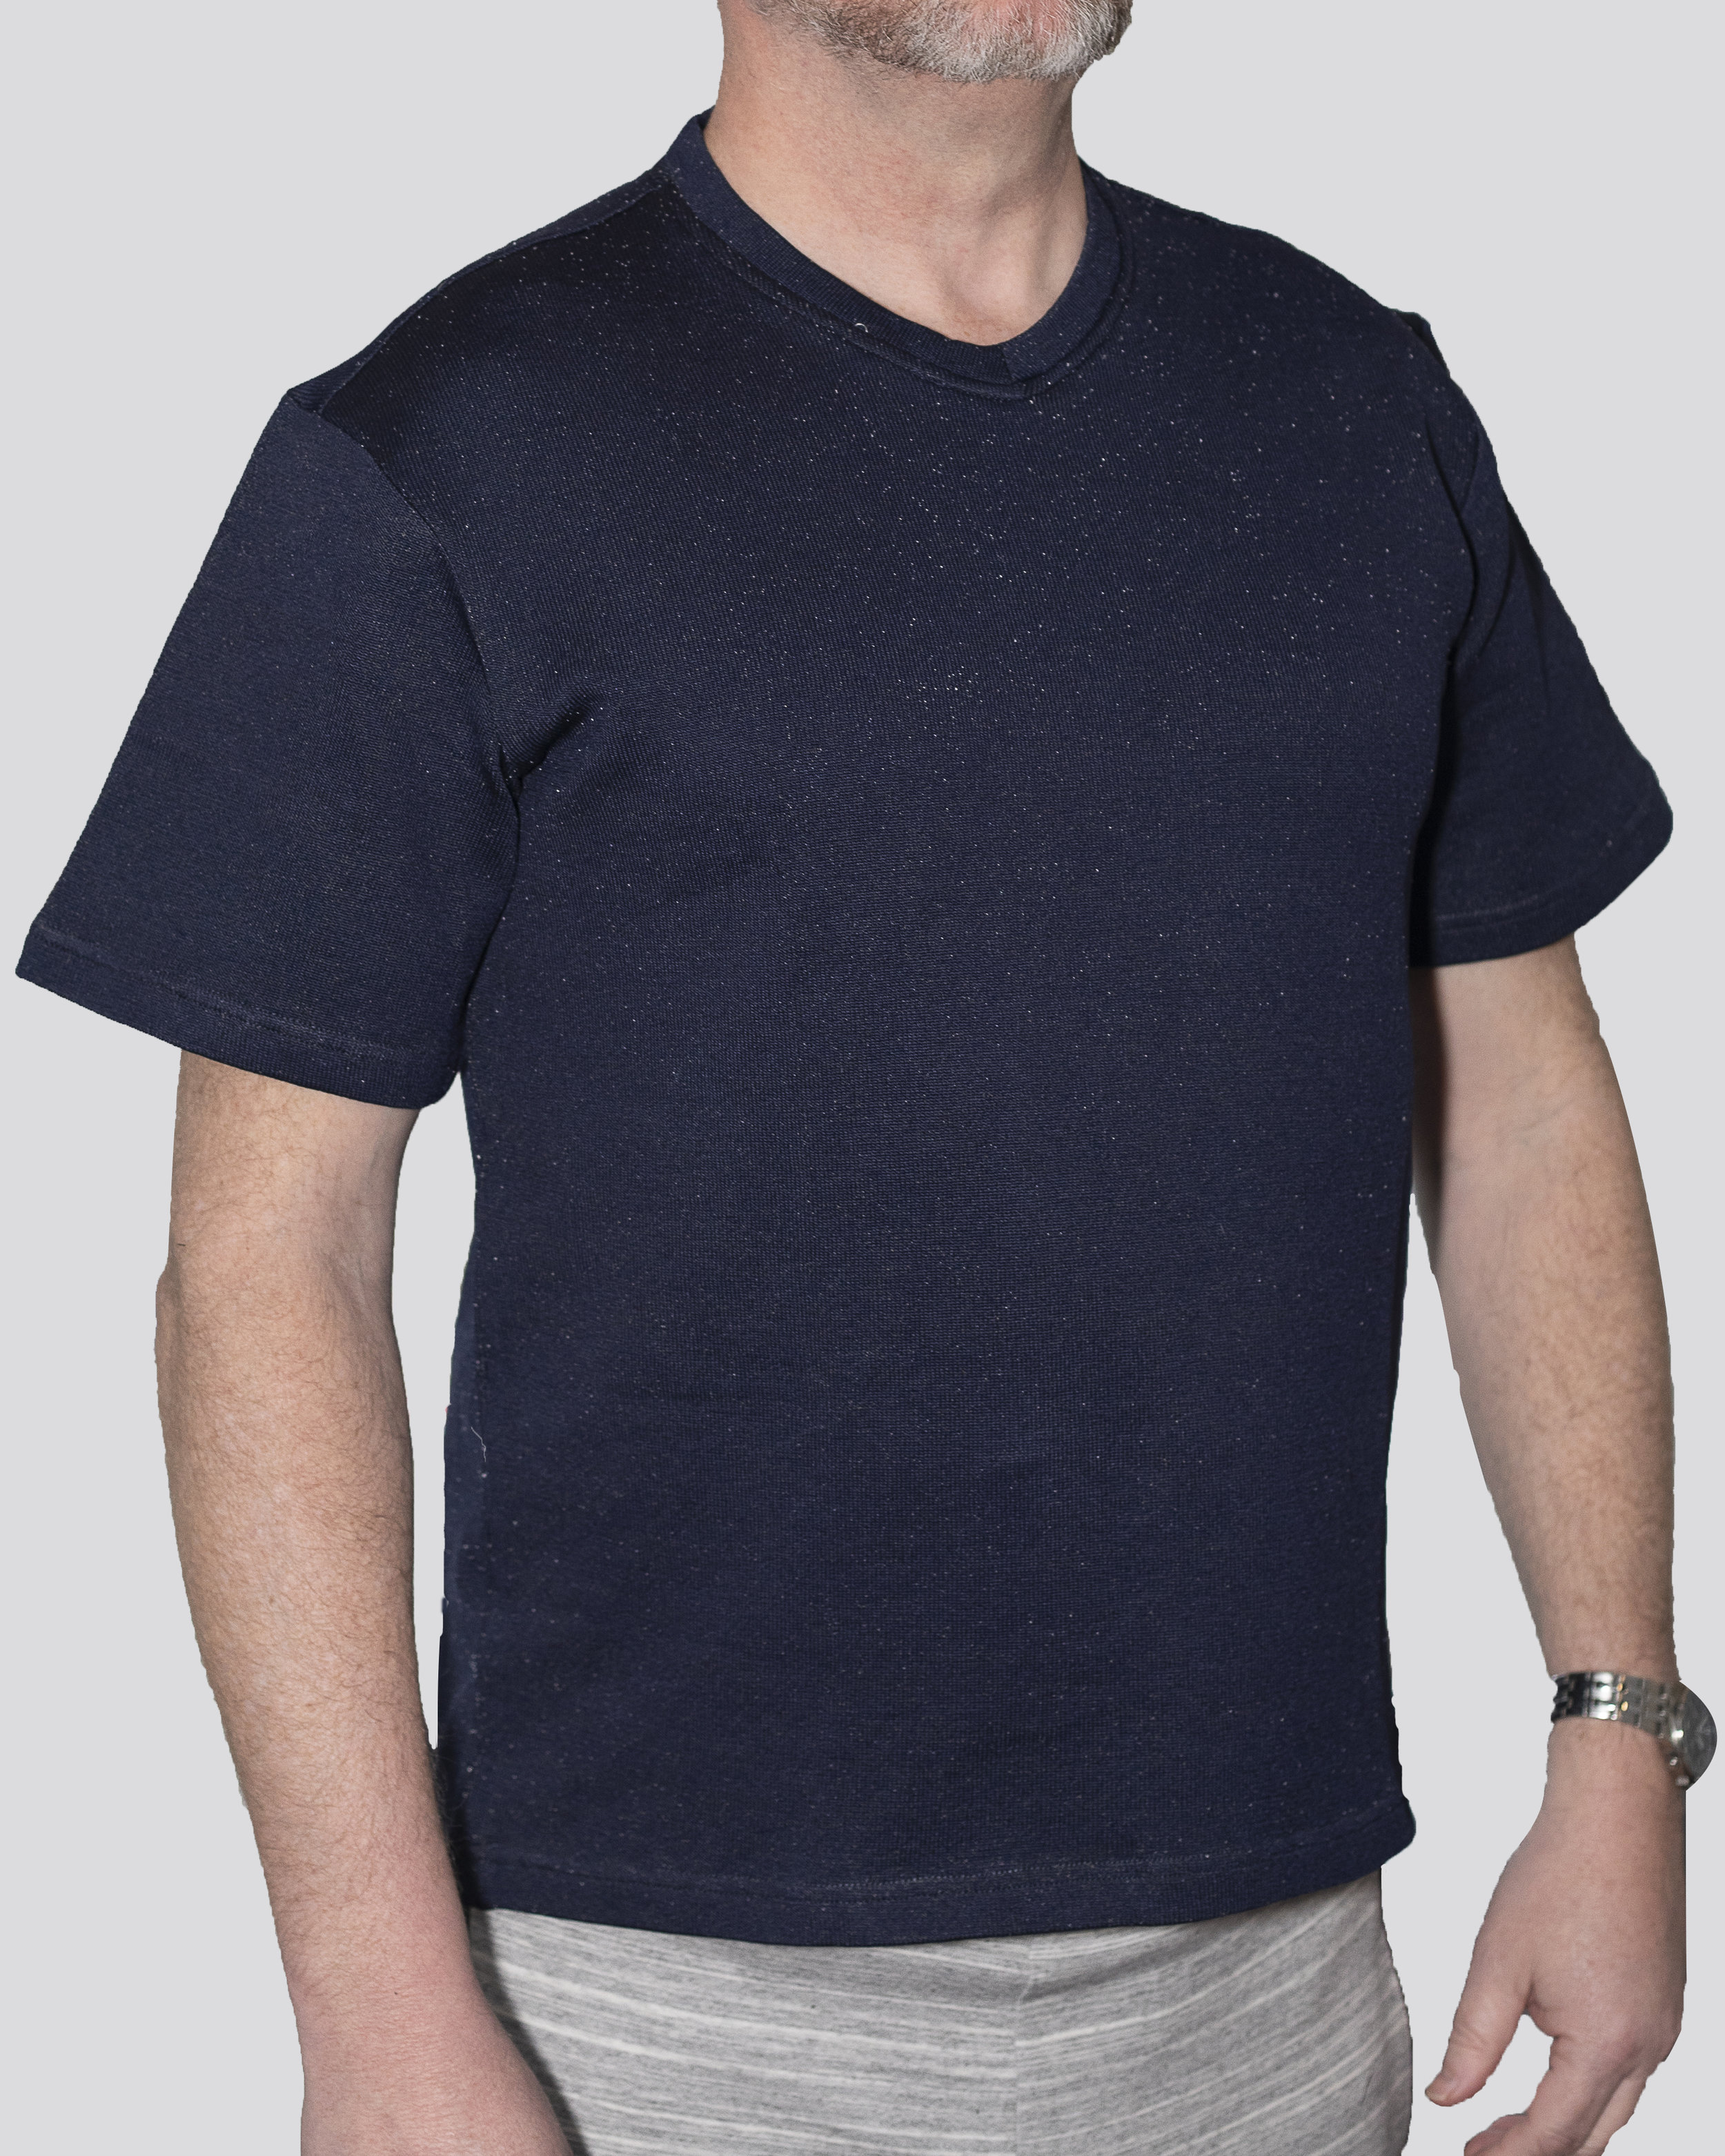 Cut-Tuff™ Cut Resistant Short Sleeve V-Neck T-Shirt Navy.jpg